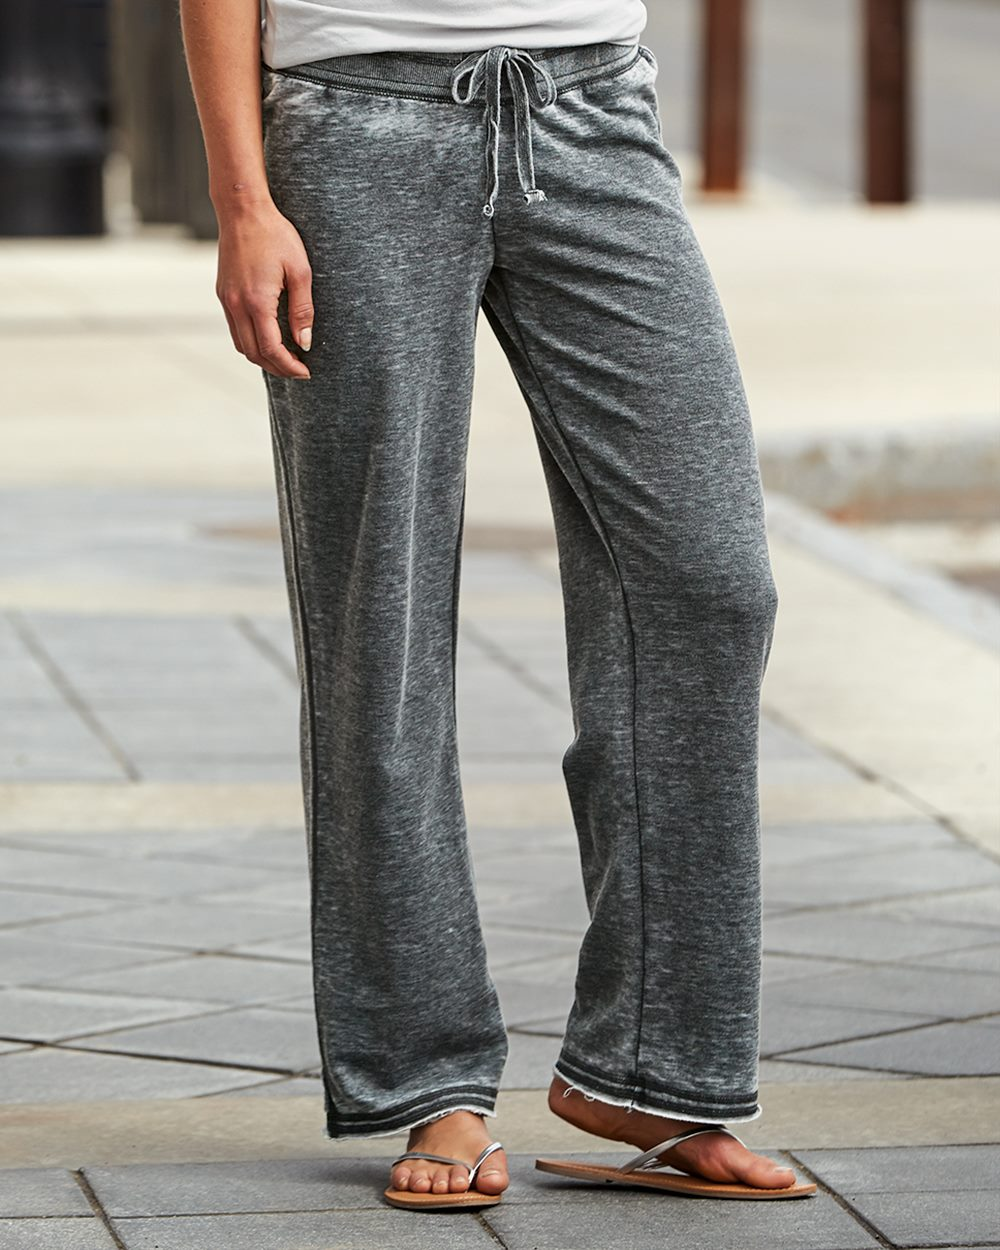 J. America 8914-Ladies Vanity Zen Fleece Sweatpant